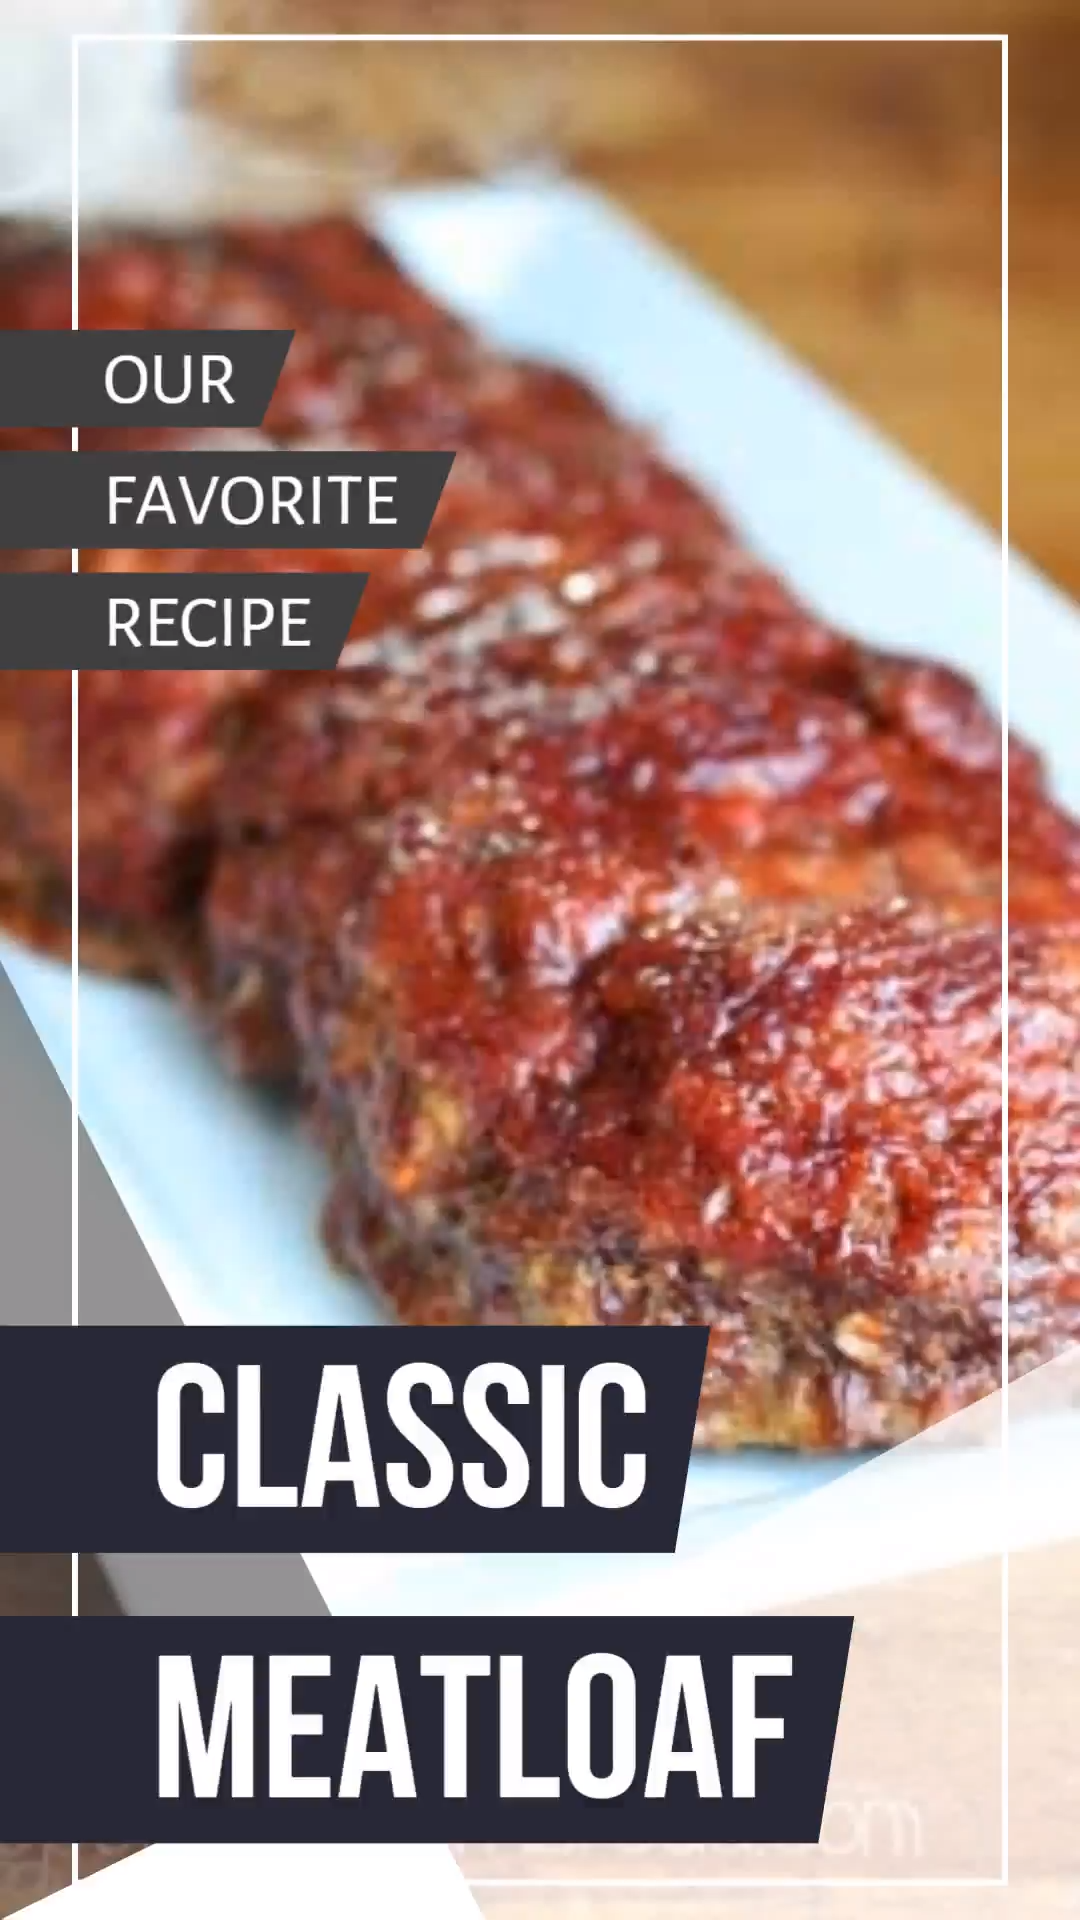 How to make the best traditional meatloaf. This meatloaf is moist and full of flavor. Great for meatloaf sandwiches too! #meatloaf #homemade #homecooking #recipe #comfortfood